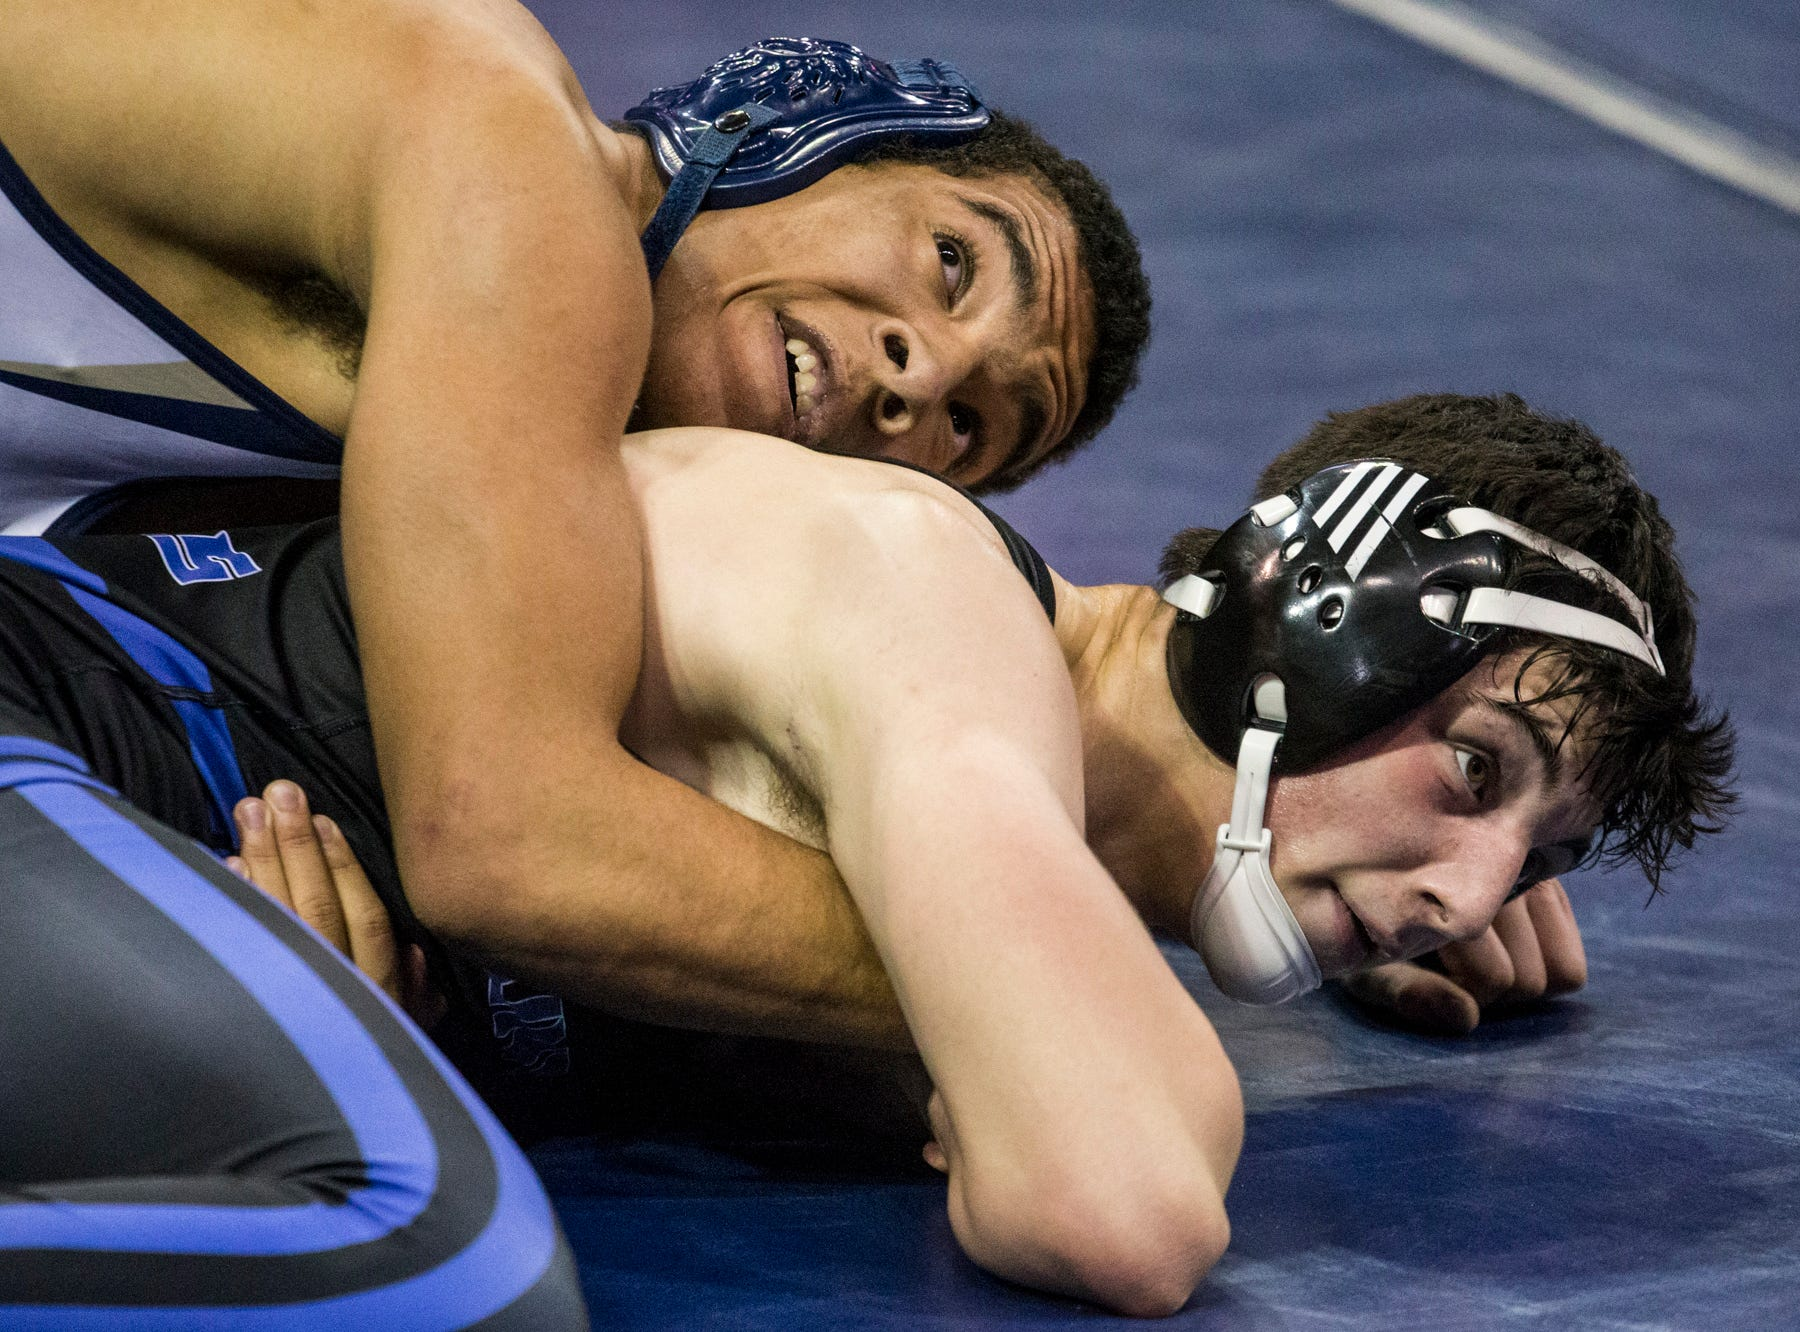 Apollo's Jesse Kovacs (top) wrestles Sunnyside's Fernando Villaescusa during the boys wrestling championship on Saturday, Feb. 9, 2019, at Prescott Valley Event Center in Prescott Valley, Ariz.